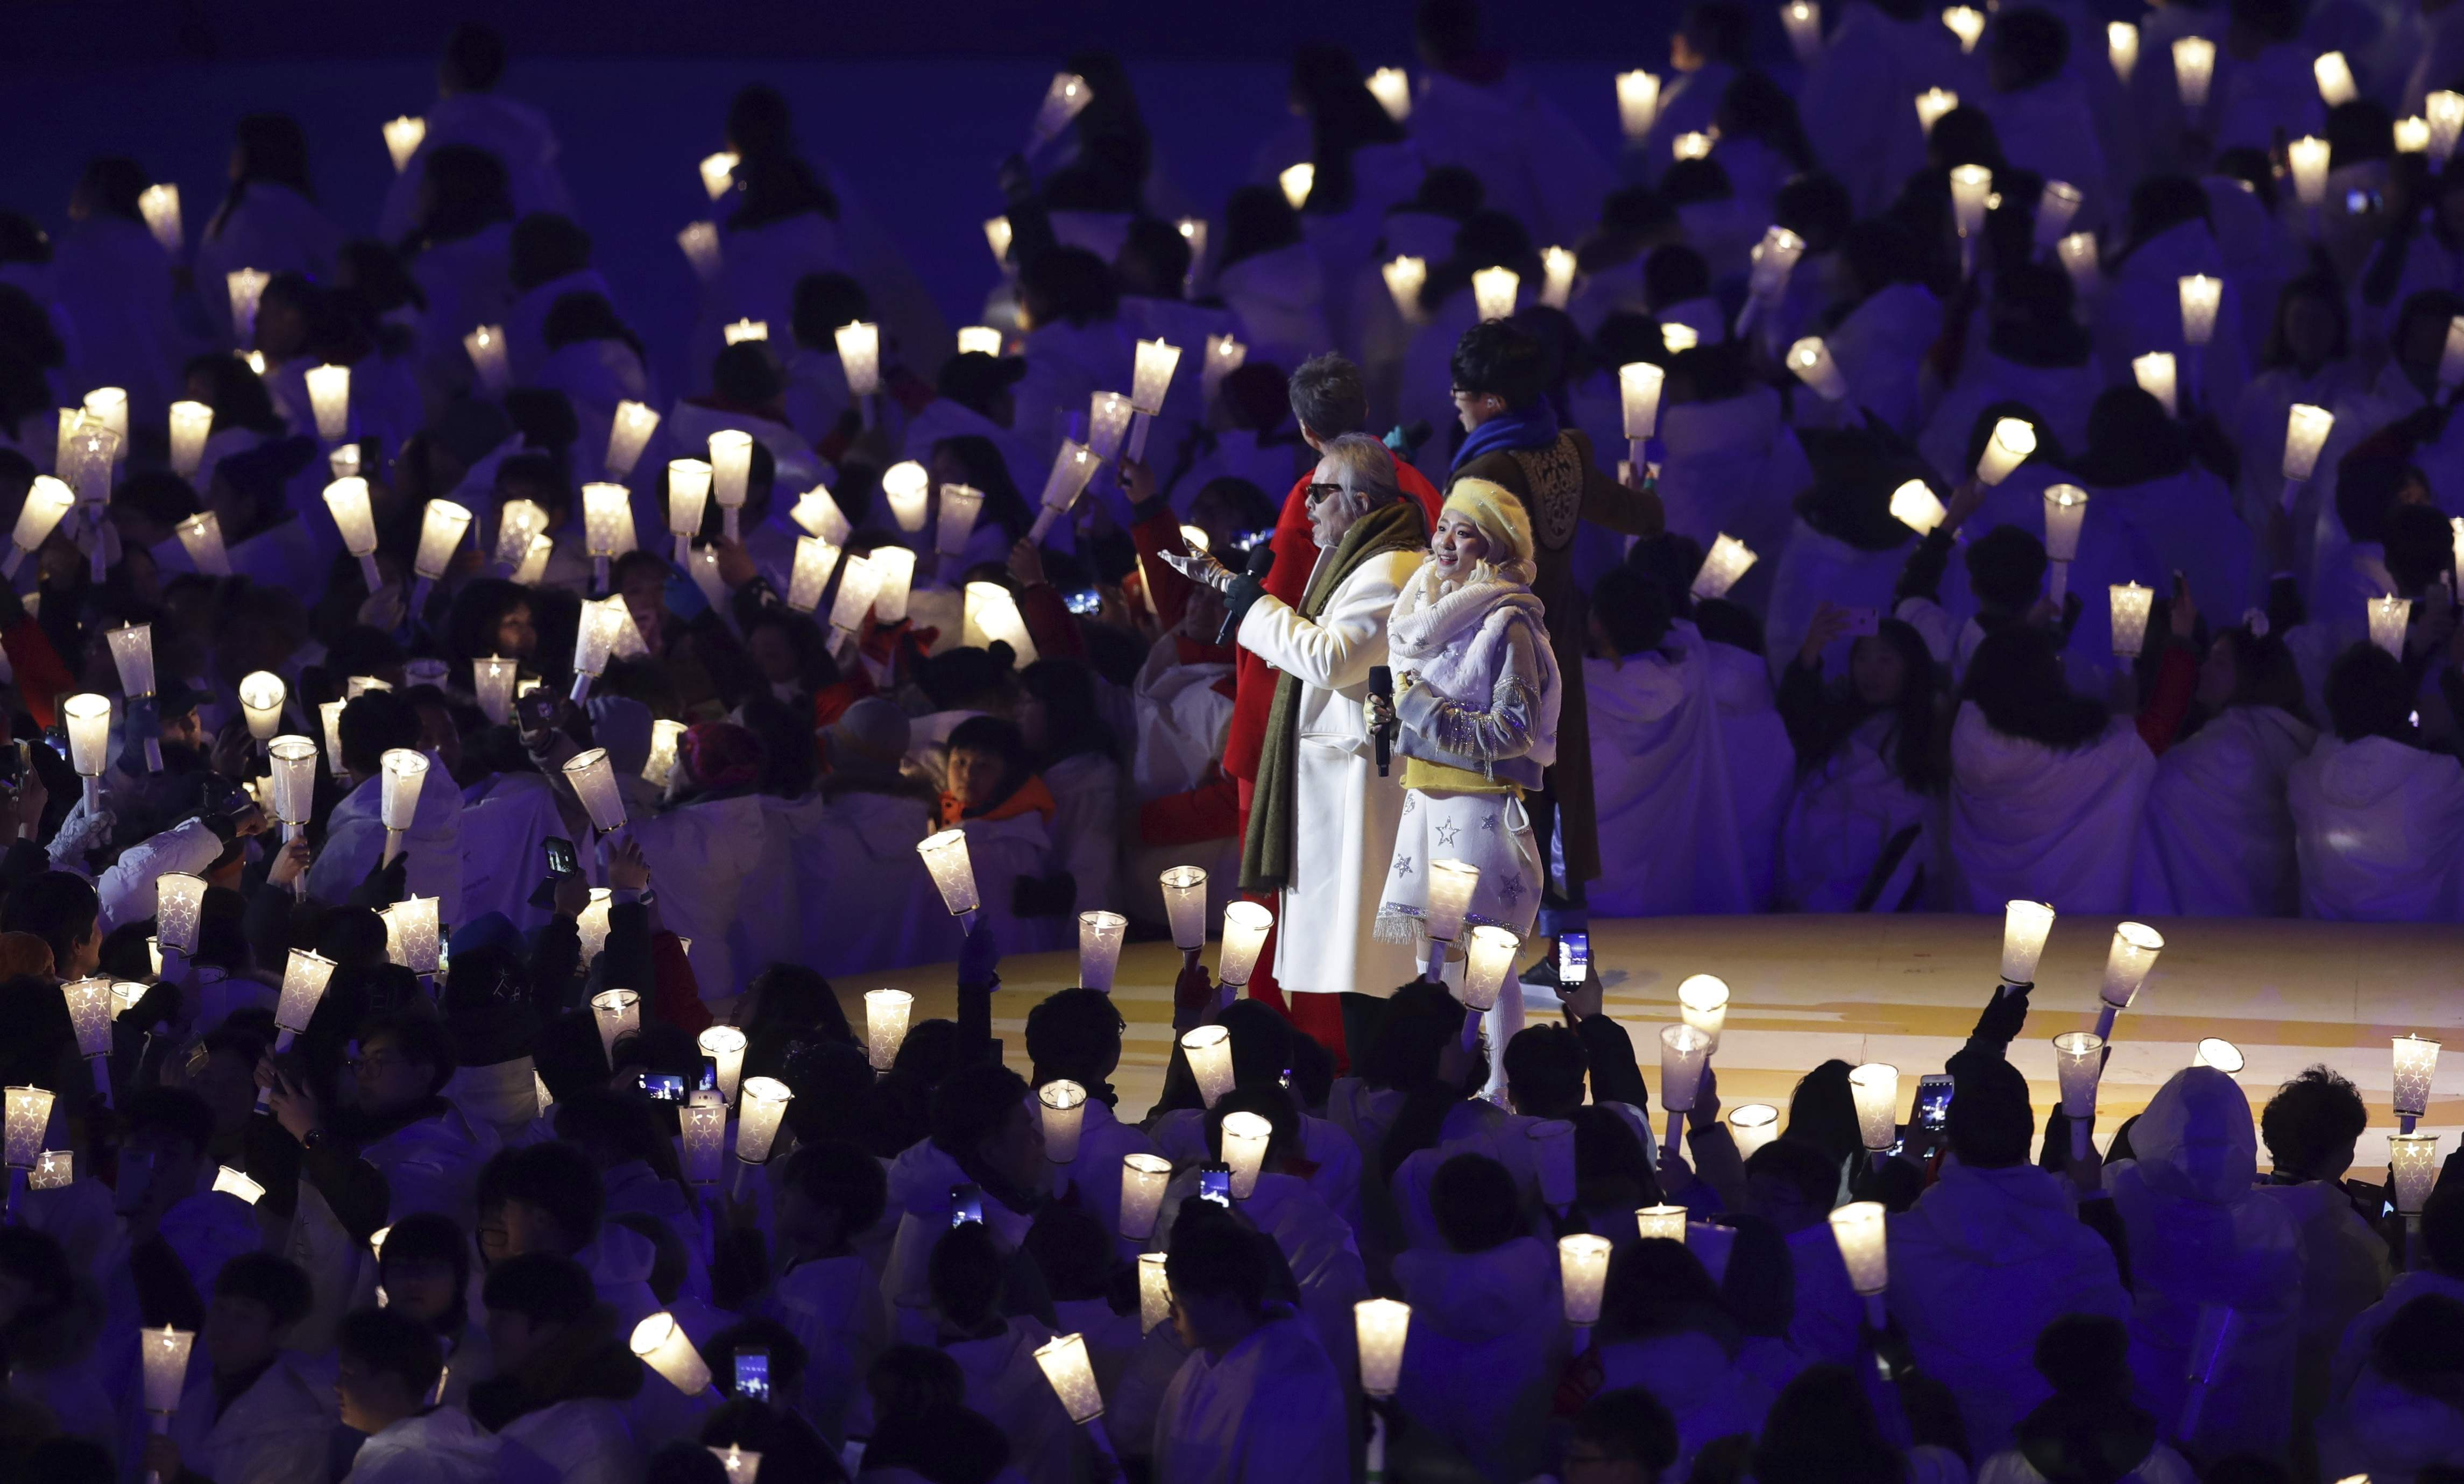 Singers from left Ha Hyun-woo, Lee Eun-mi, Jeon In-kwon and Ahn Ji-young perform during the opening ceremony of the 2018 Winter Olympics in Pyeongchang, South Korea, Friday, Feb. 9, 2018. (AP Photo/Michael Sohn)